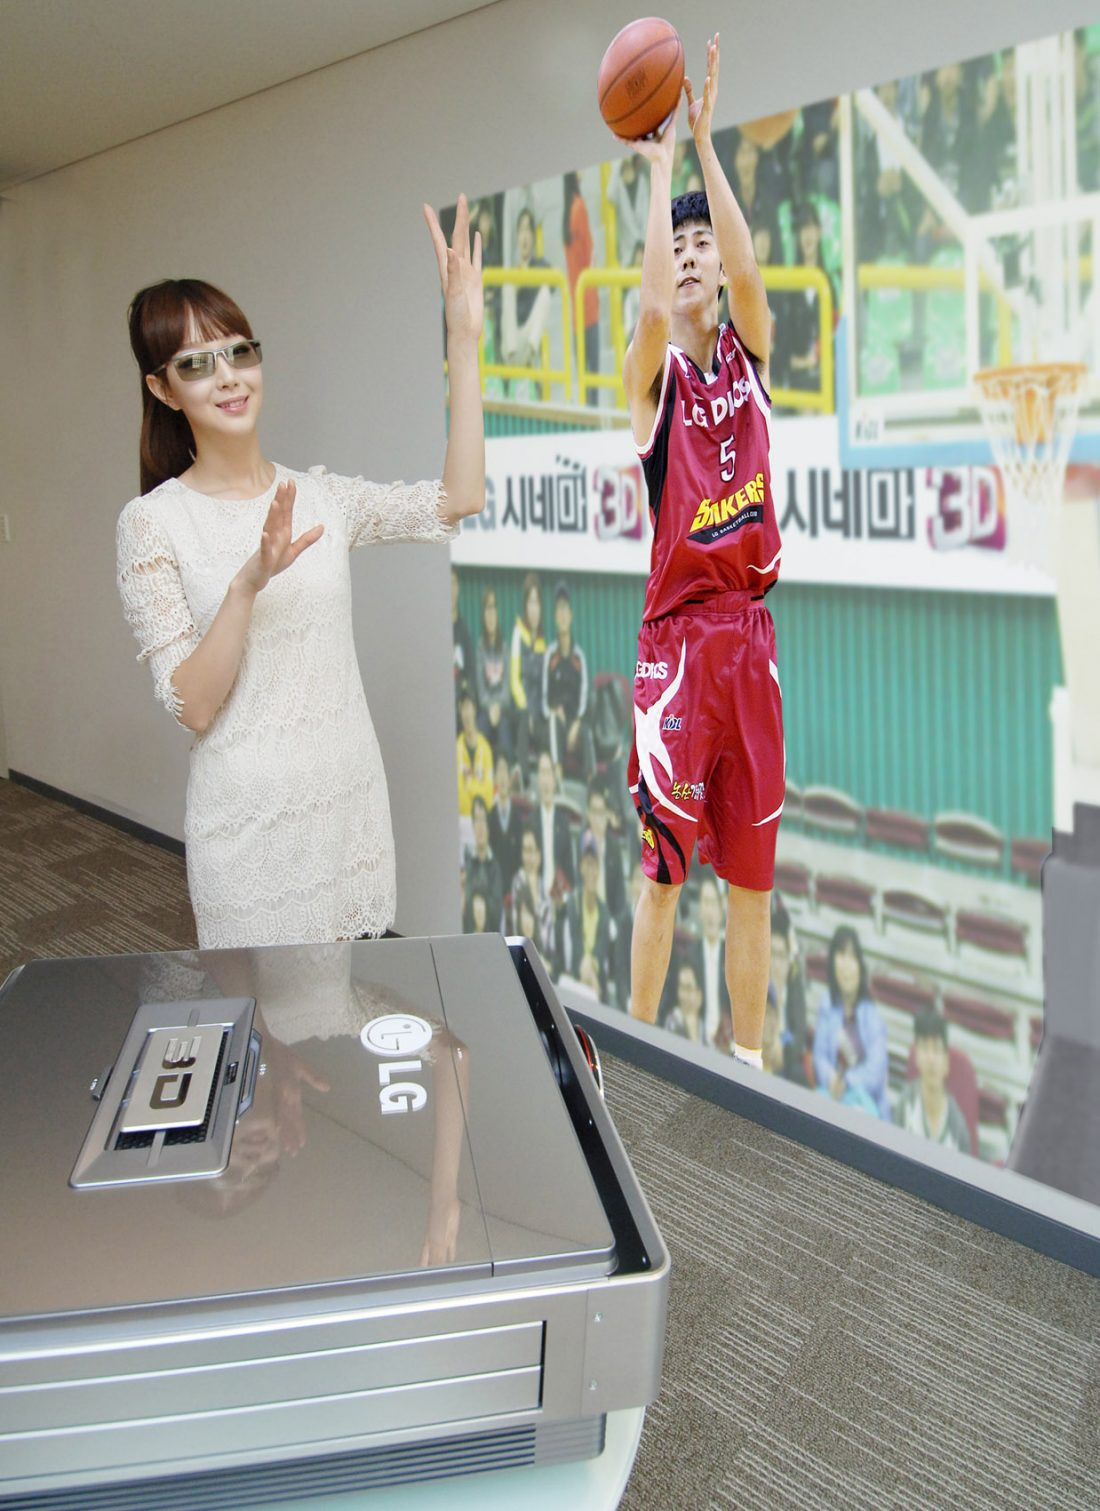 A model wearing 3D glasses while experiencing the CF3DAT CINEMA 3D projector, which is projecting a basketball player taking a shot